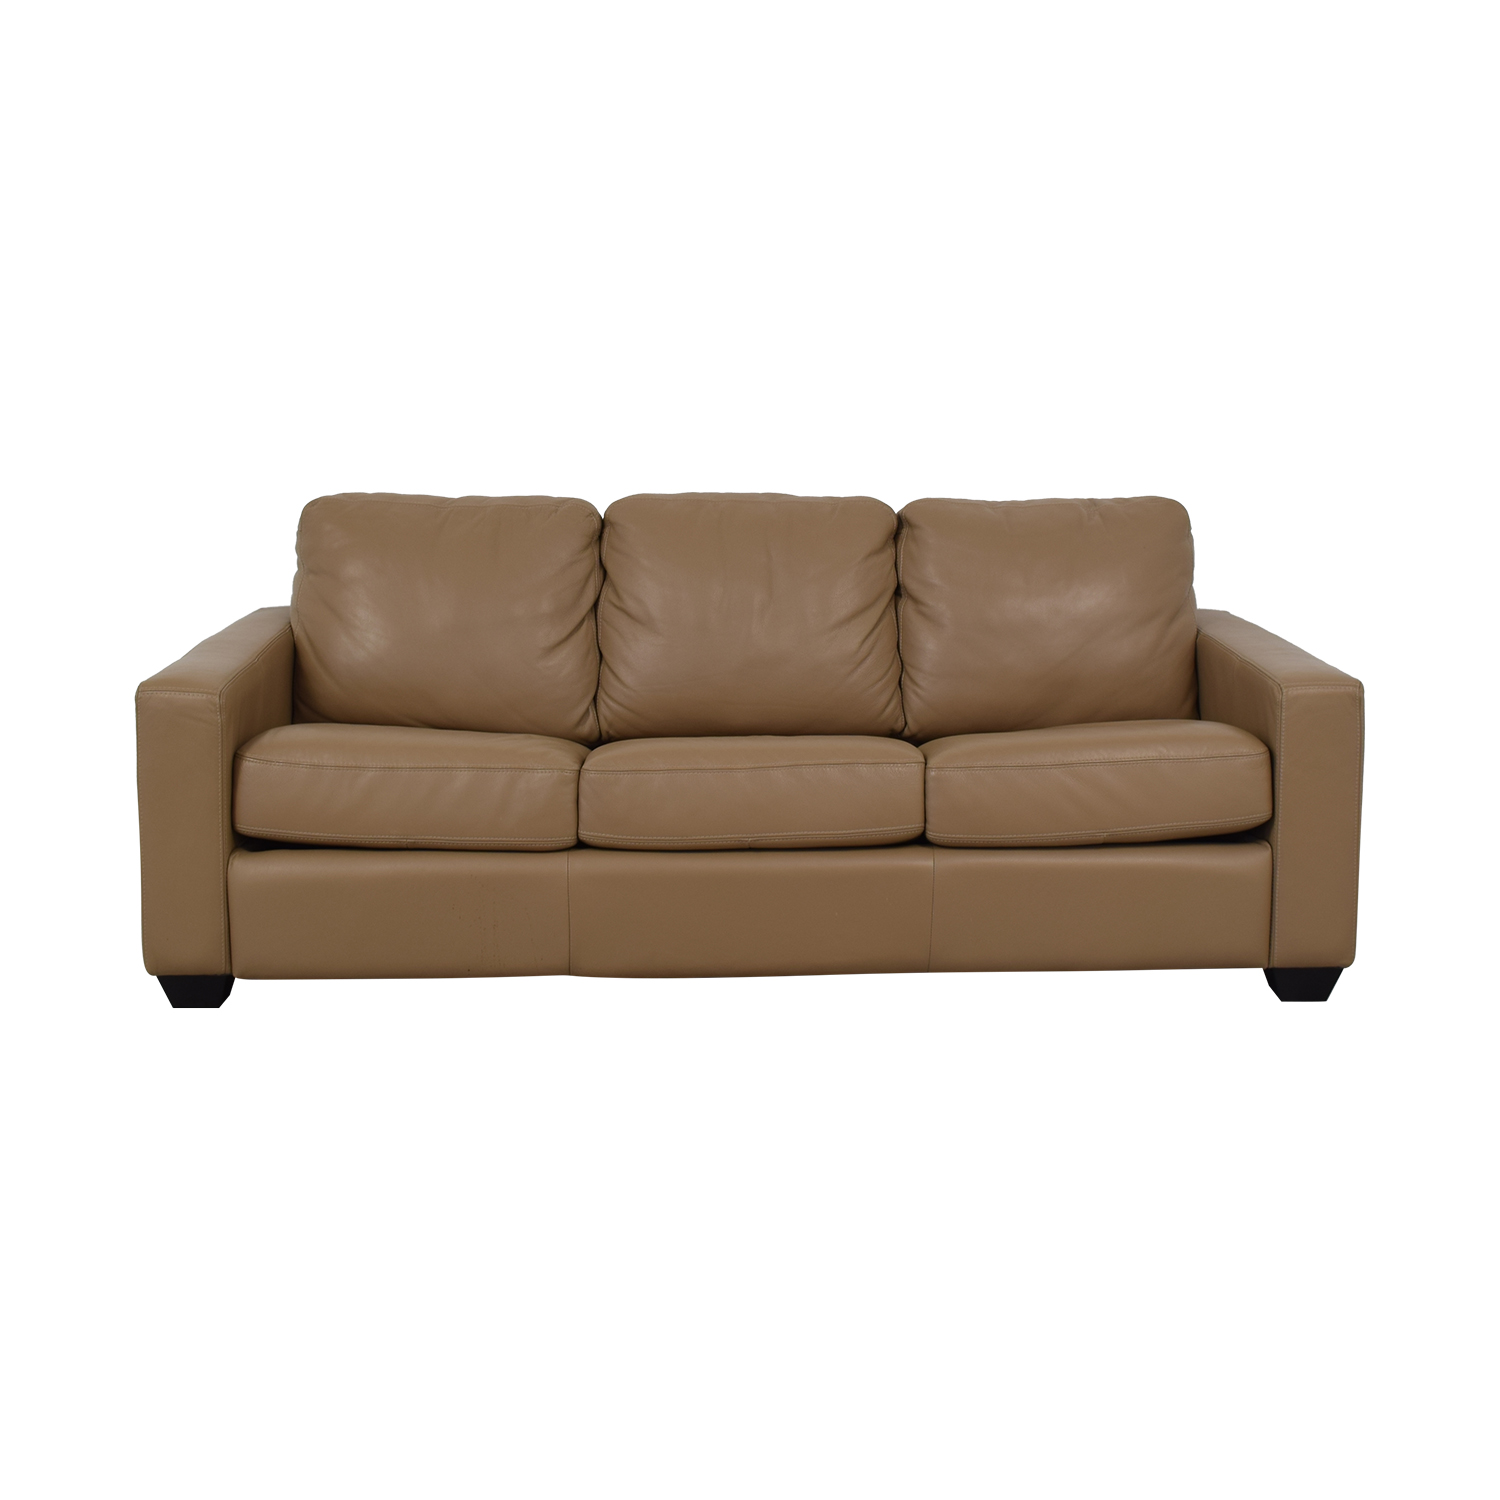 buy JC Penney Leather Sleeper Sofa JC Penney Sofas